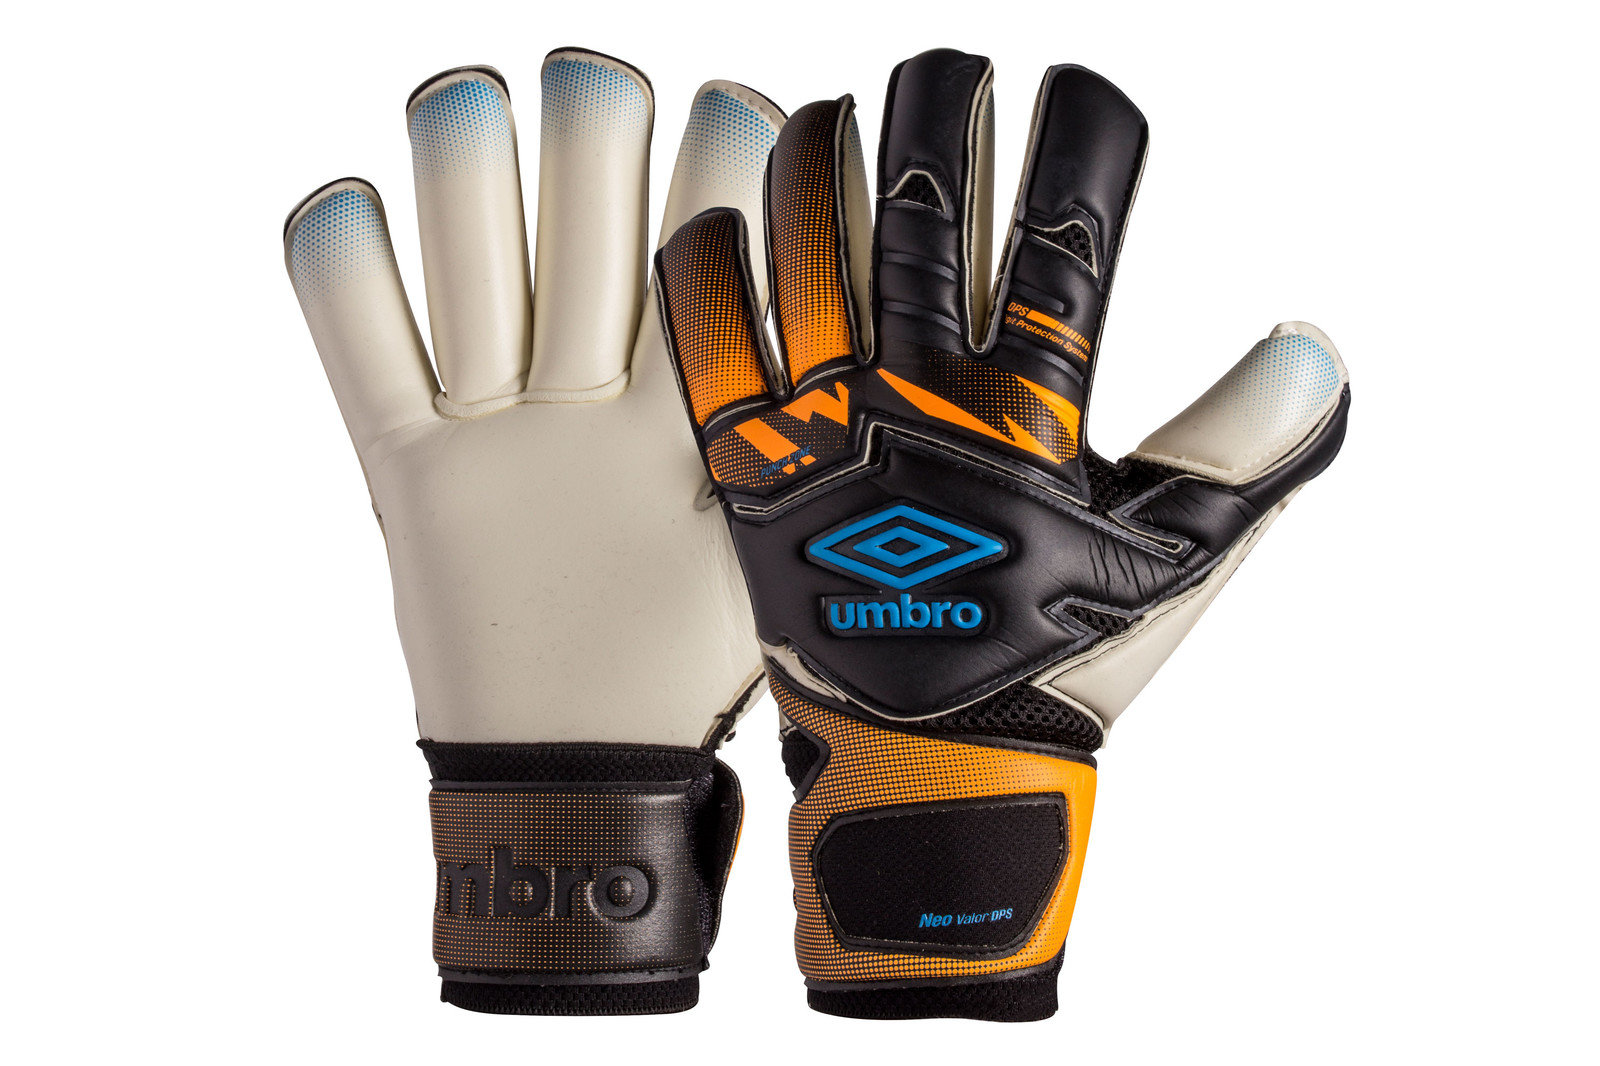 umbro goalkeeper gloves size chart